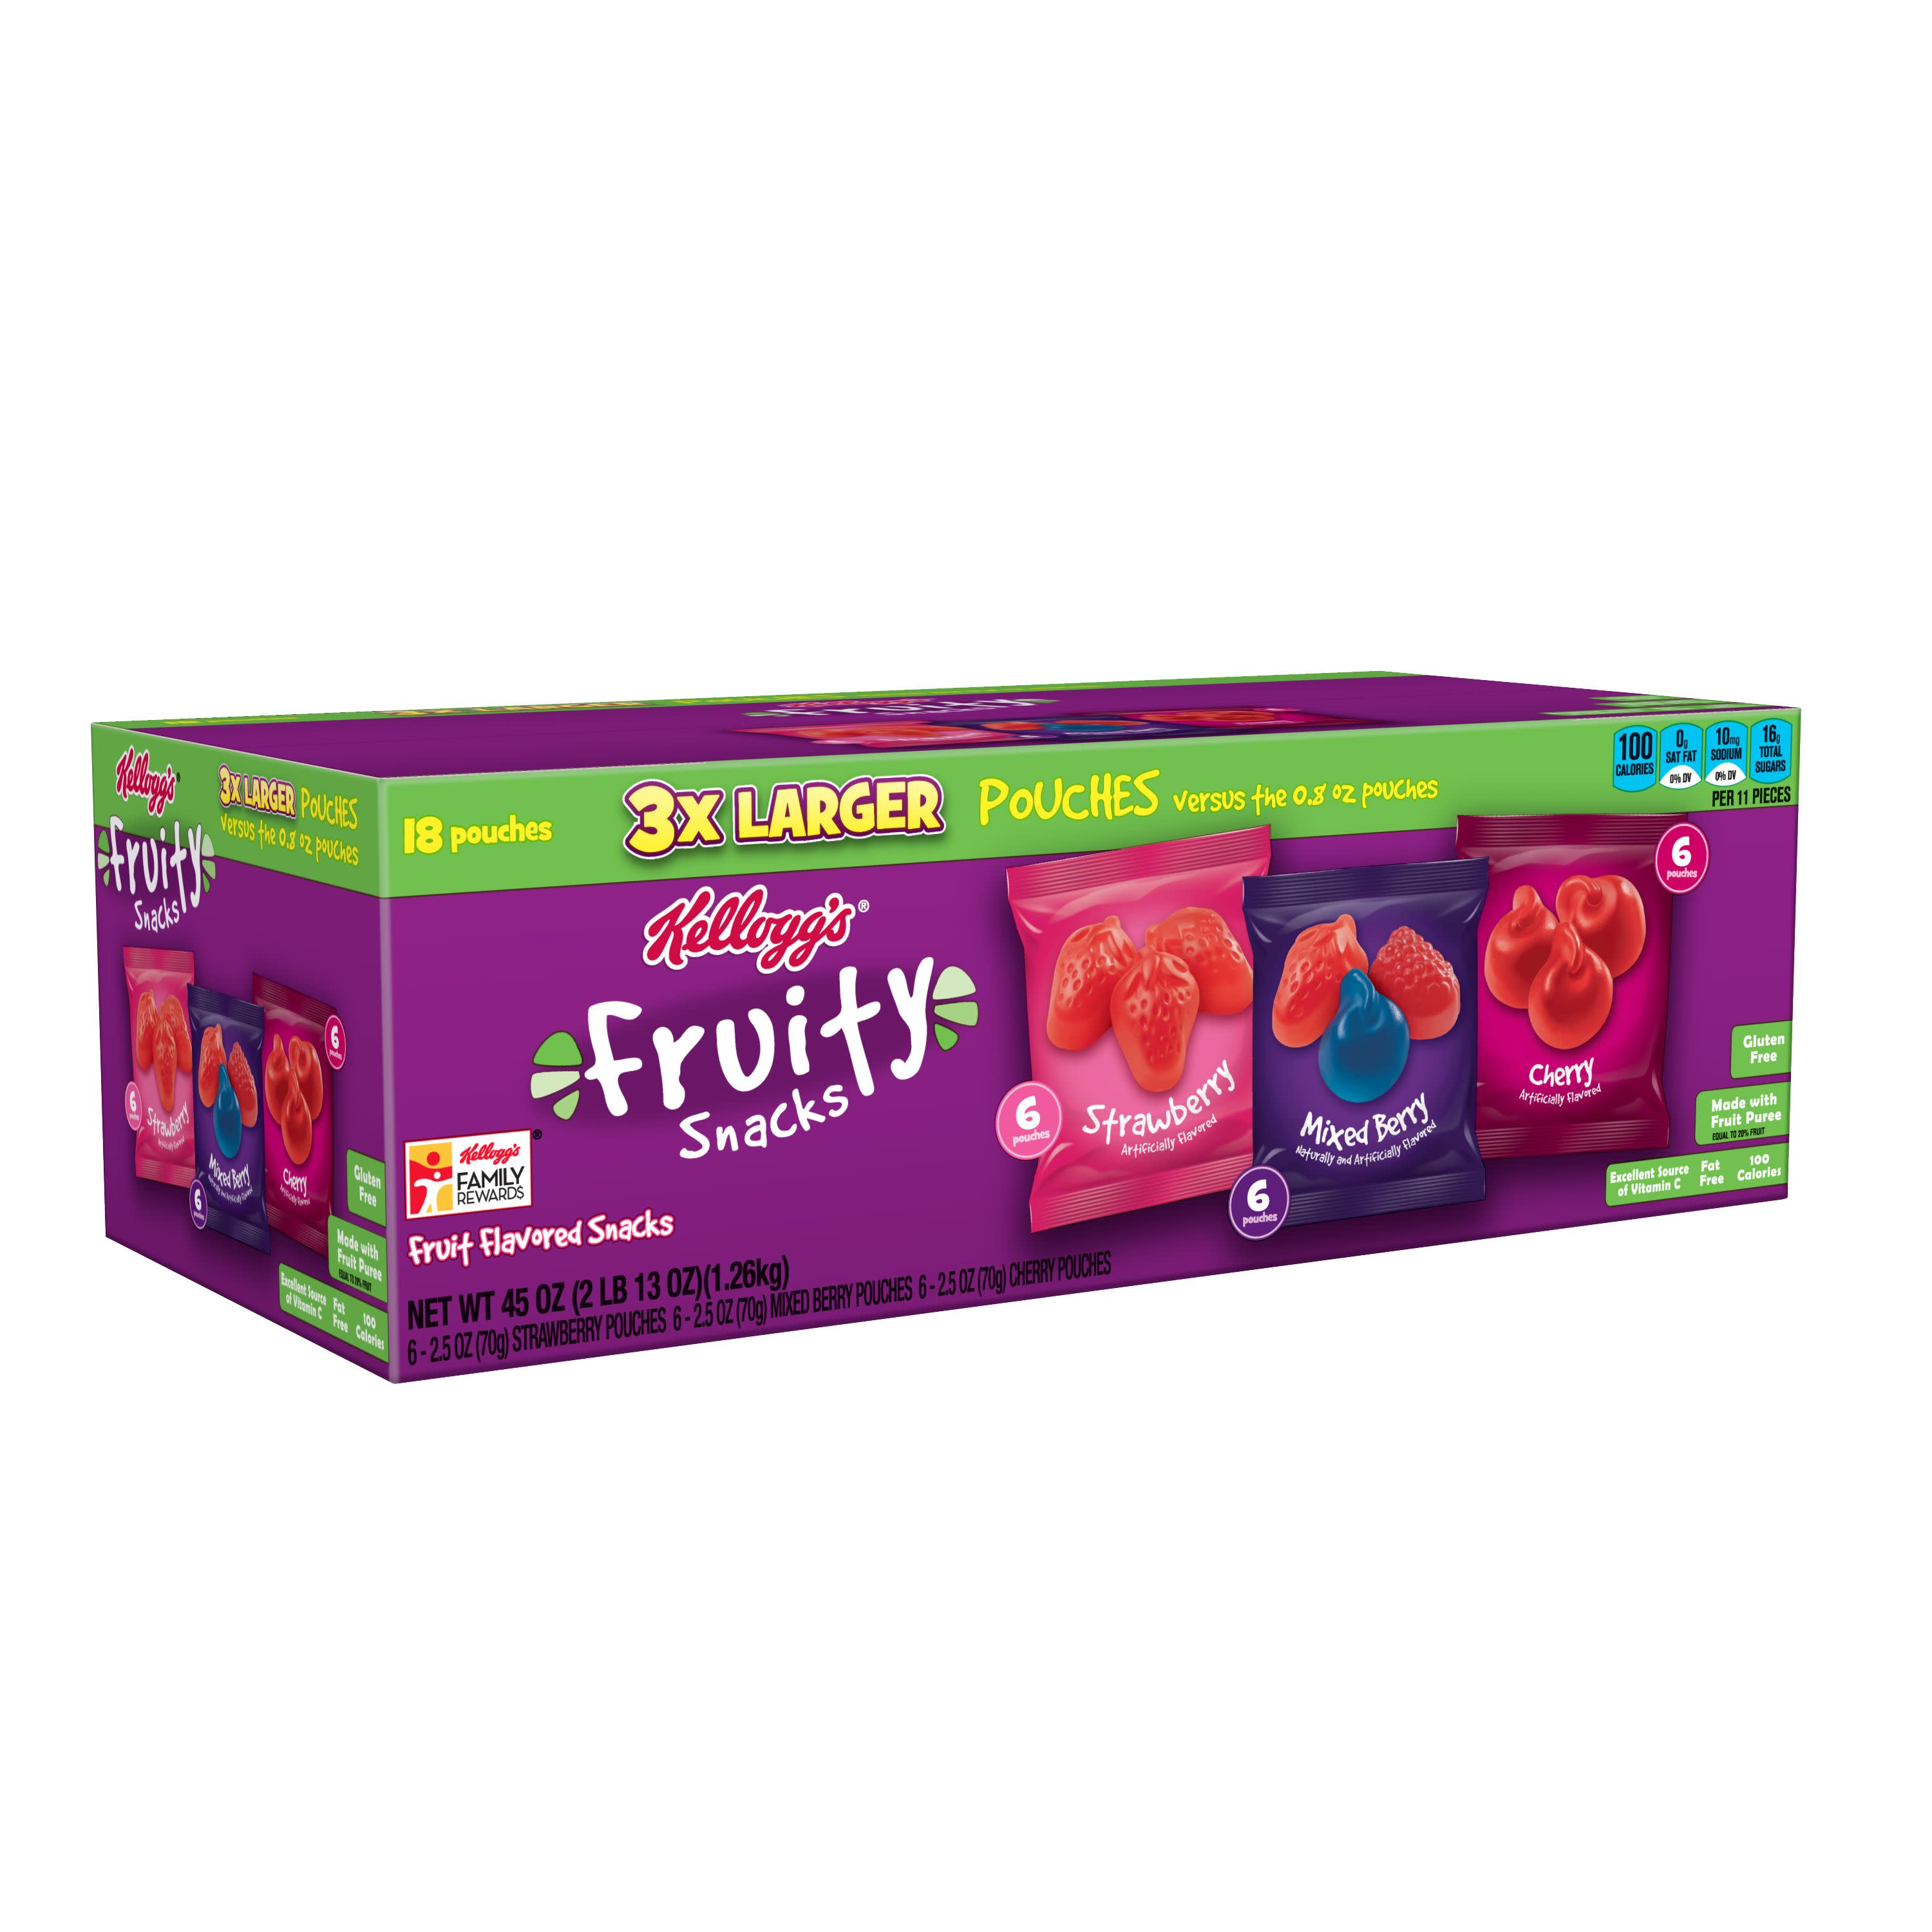 Kellogg's Strawberry, Mixed Berry and Cherry Fruit Flavored Snacks Pouches, 45 Oz., 18 Count